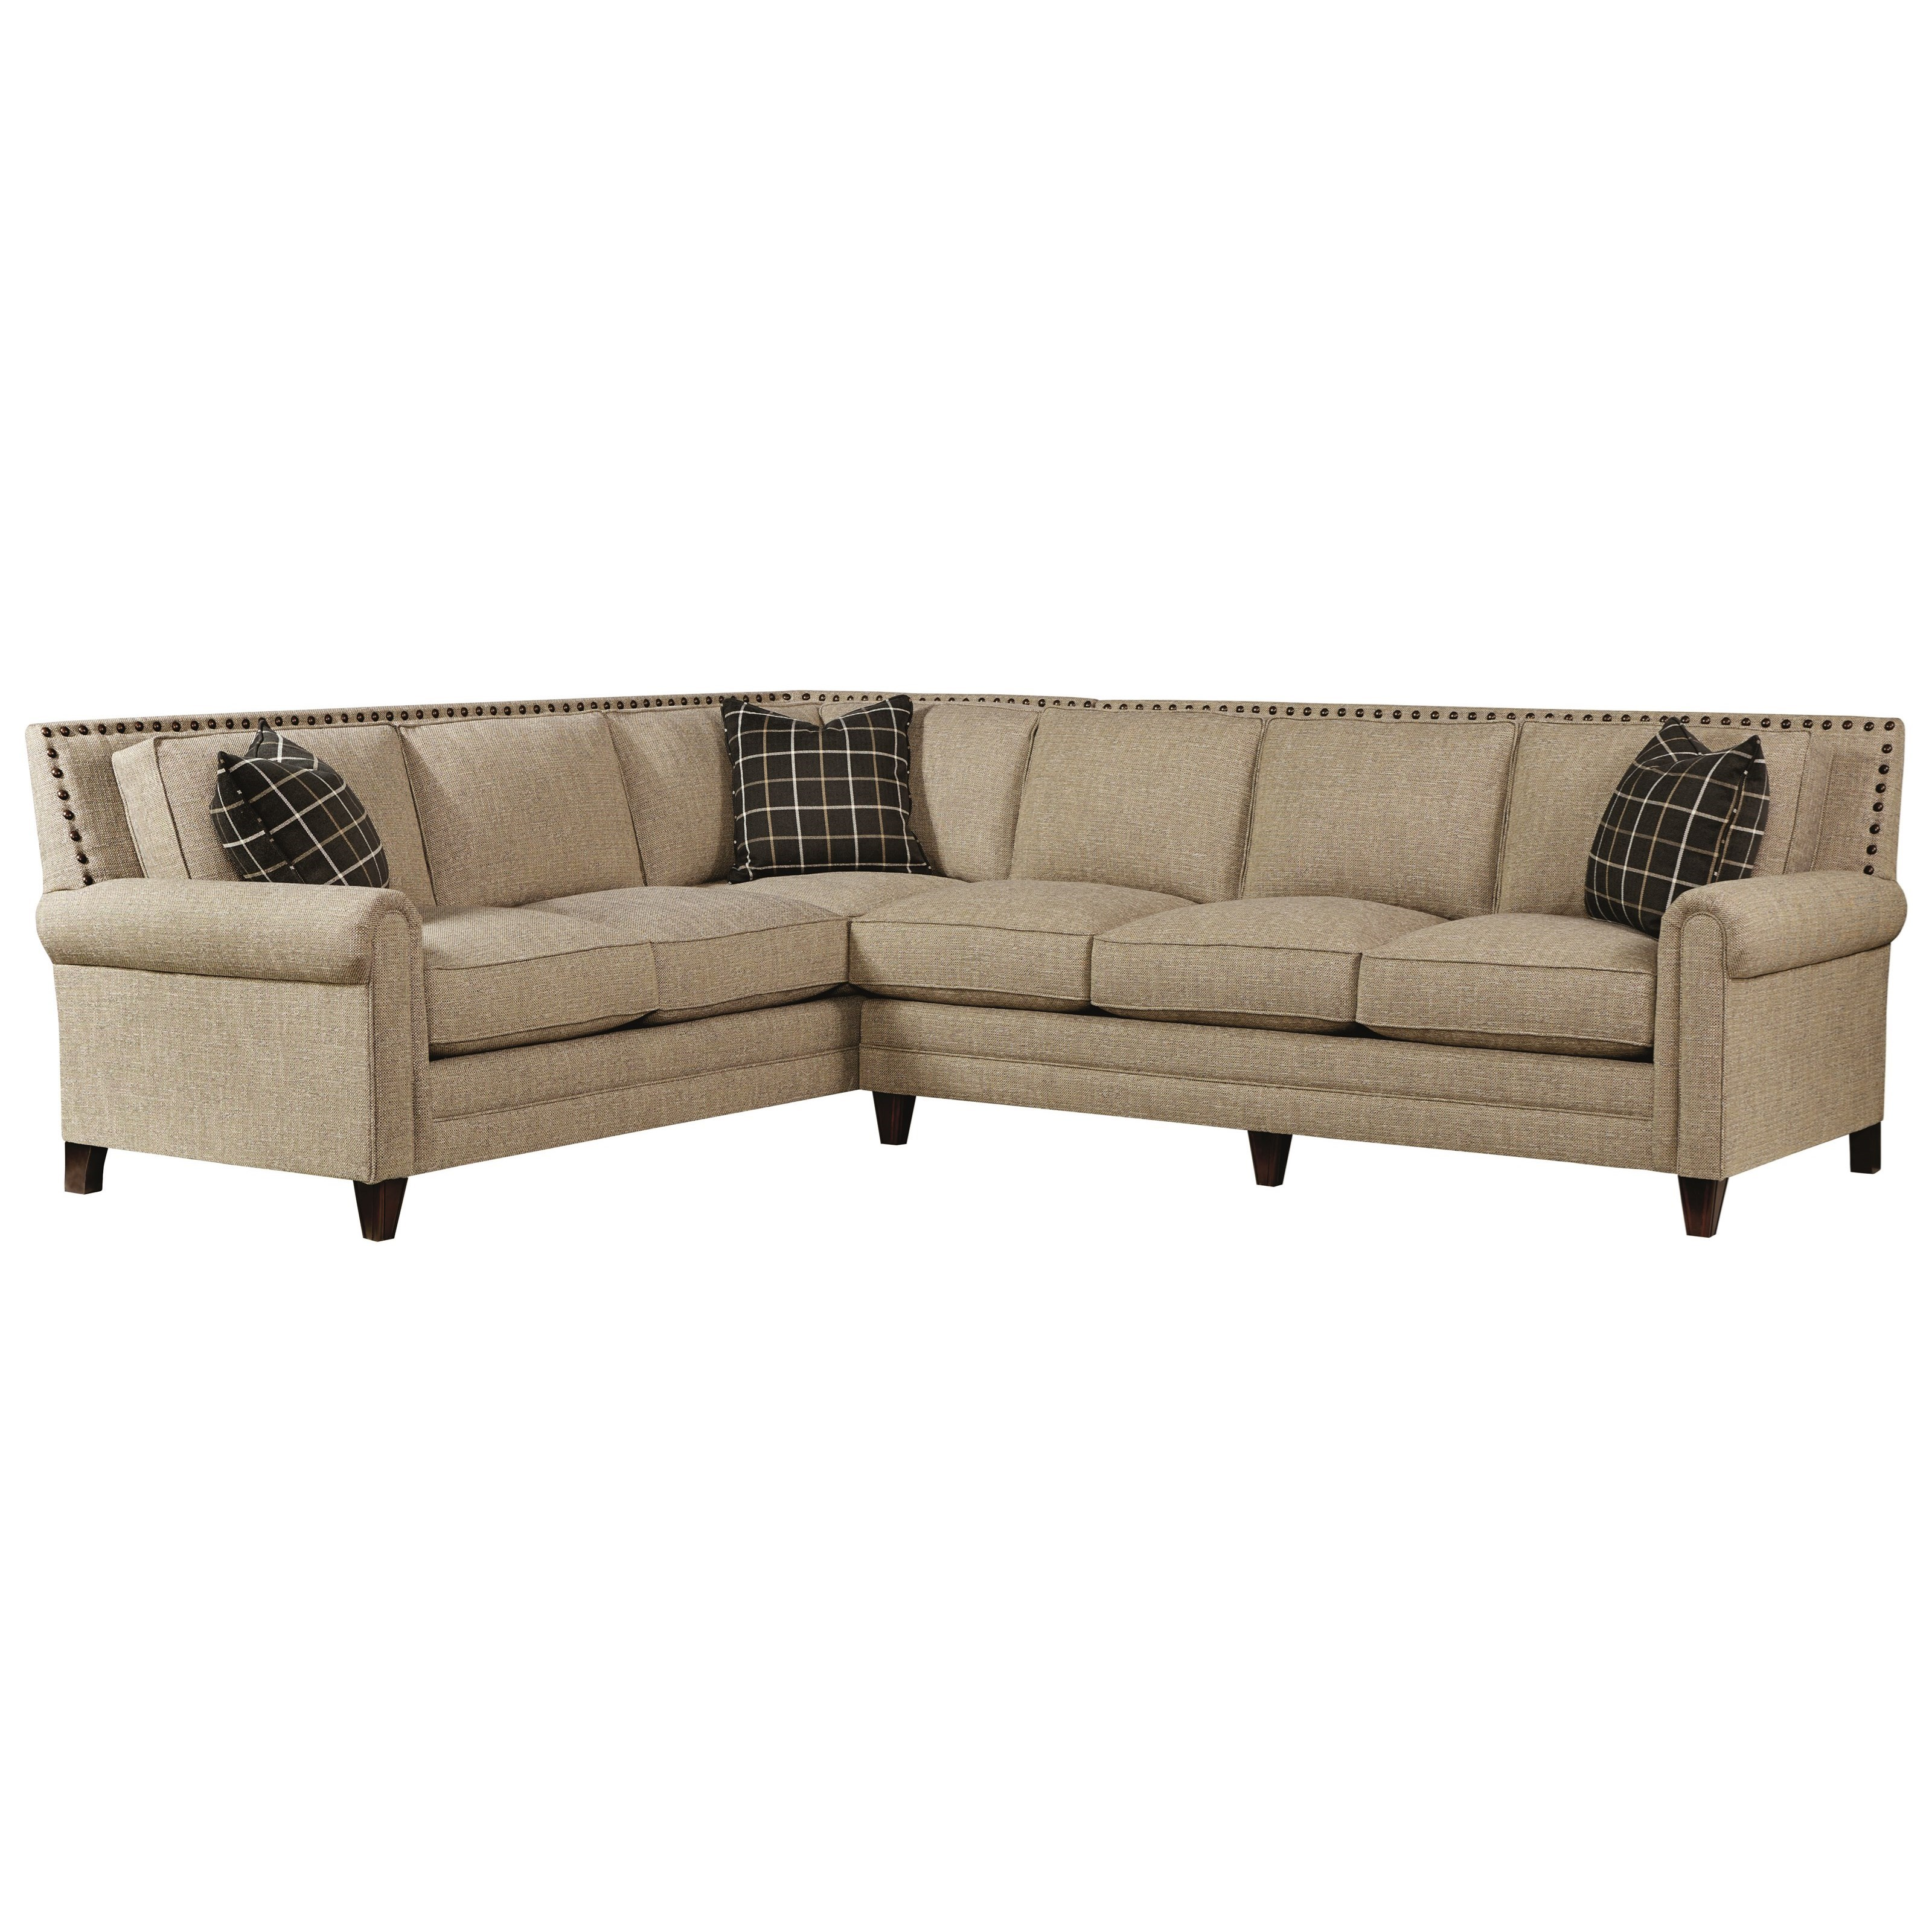 Bassett Harlan Sectional Sofa With 5 Seats   Item Number: 2618 66FC+61FC